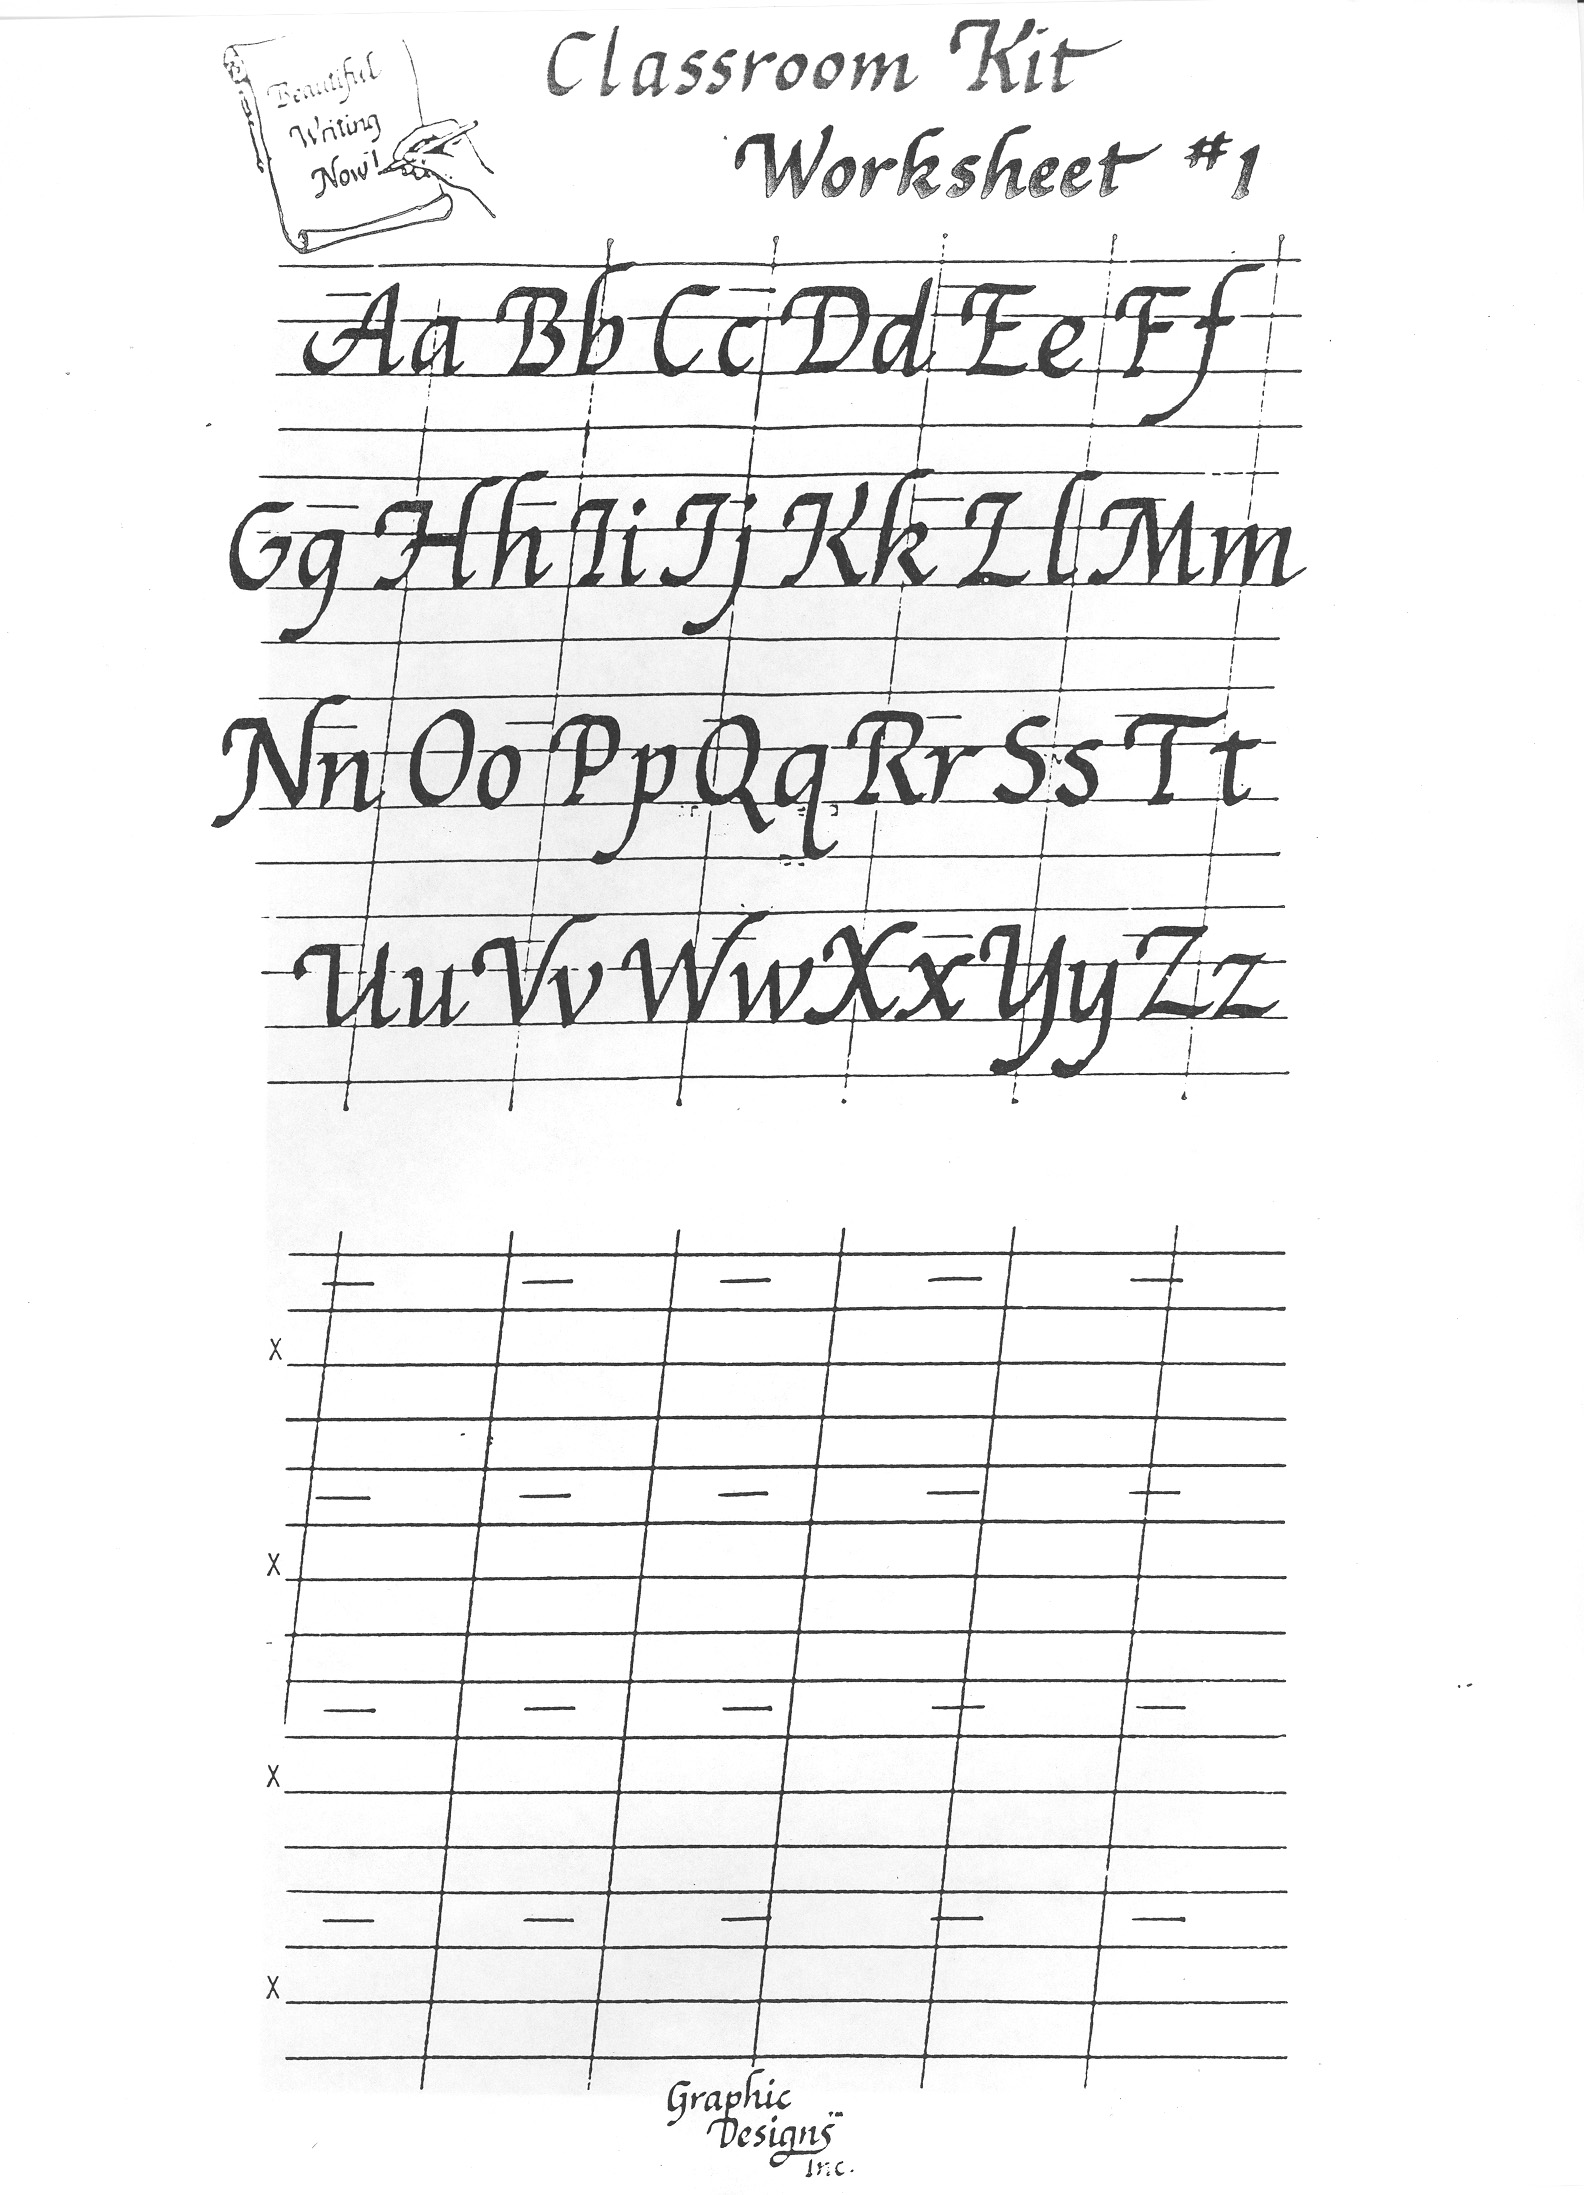 7 Best Images Of Calligraphy Worksheets Printable